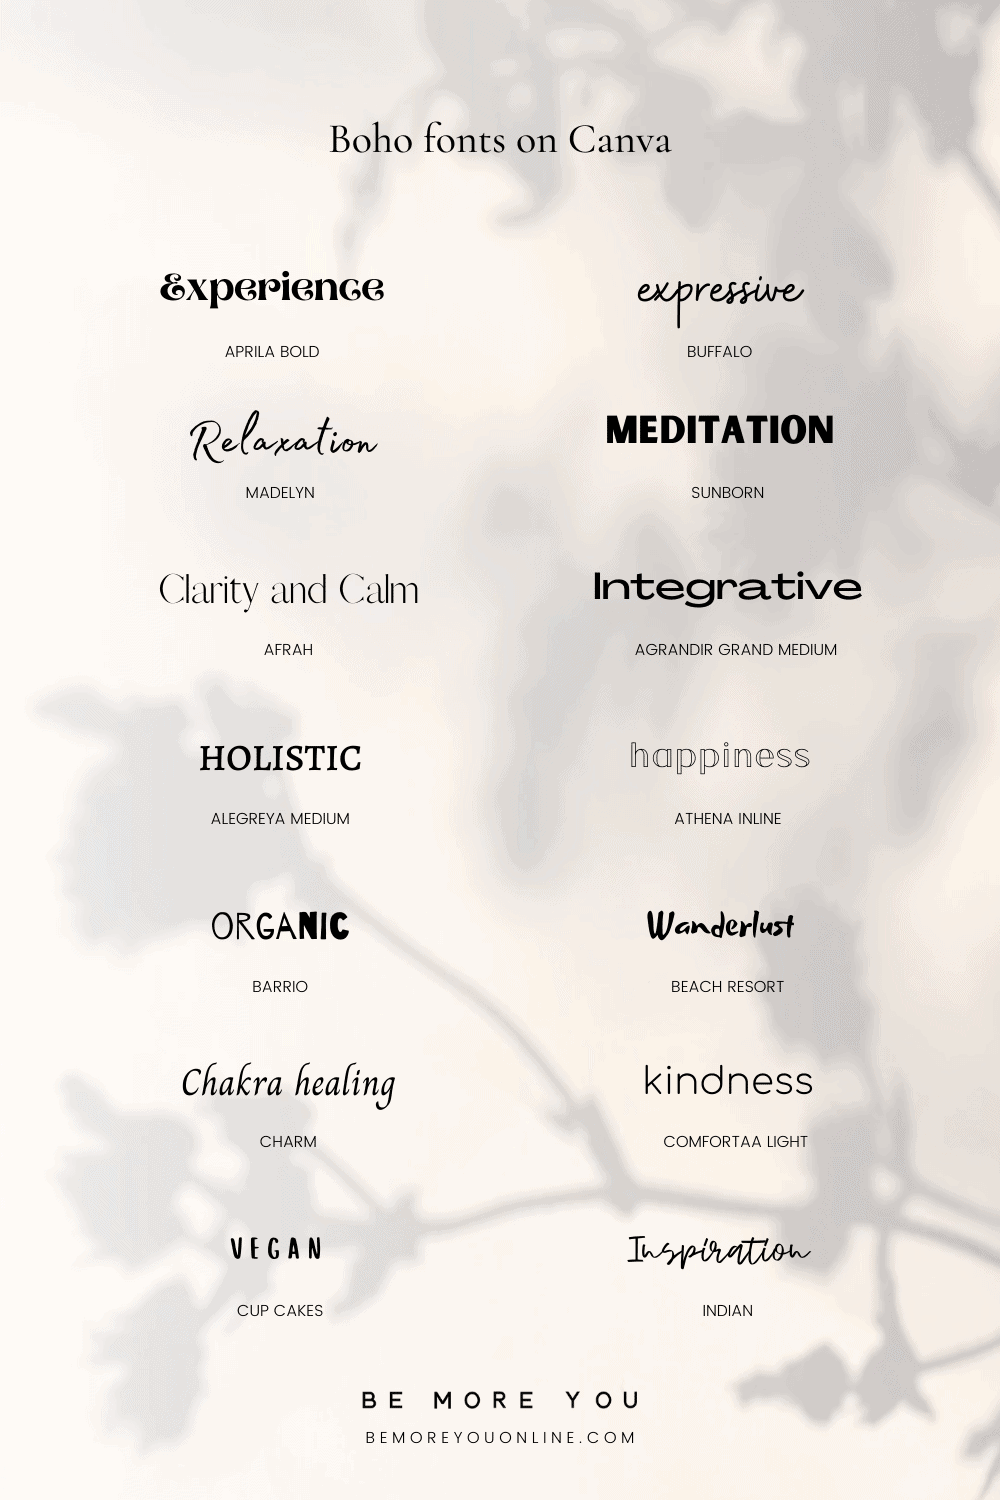 Examples of Boho fonts on canva